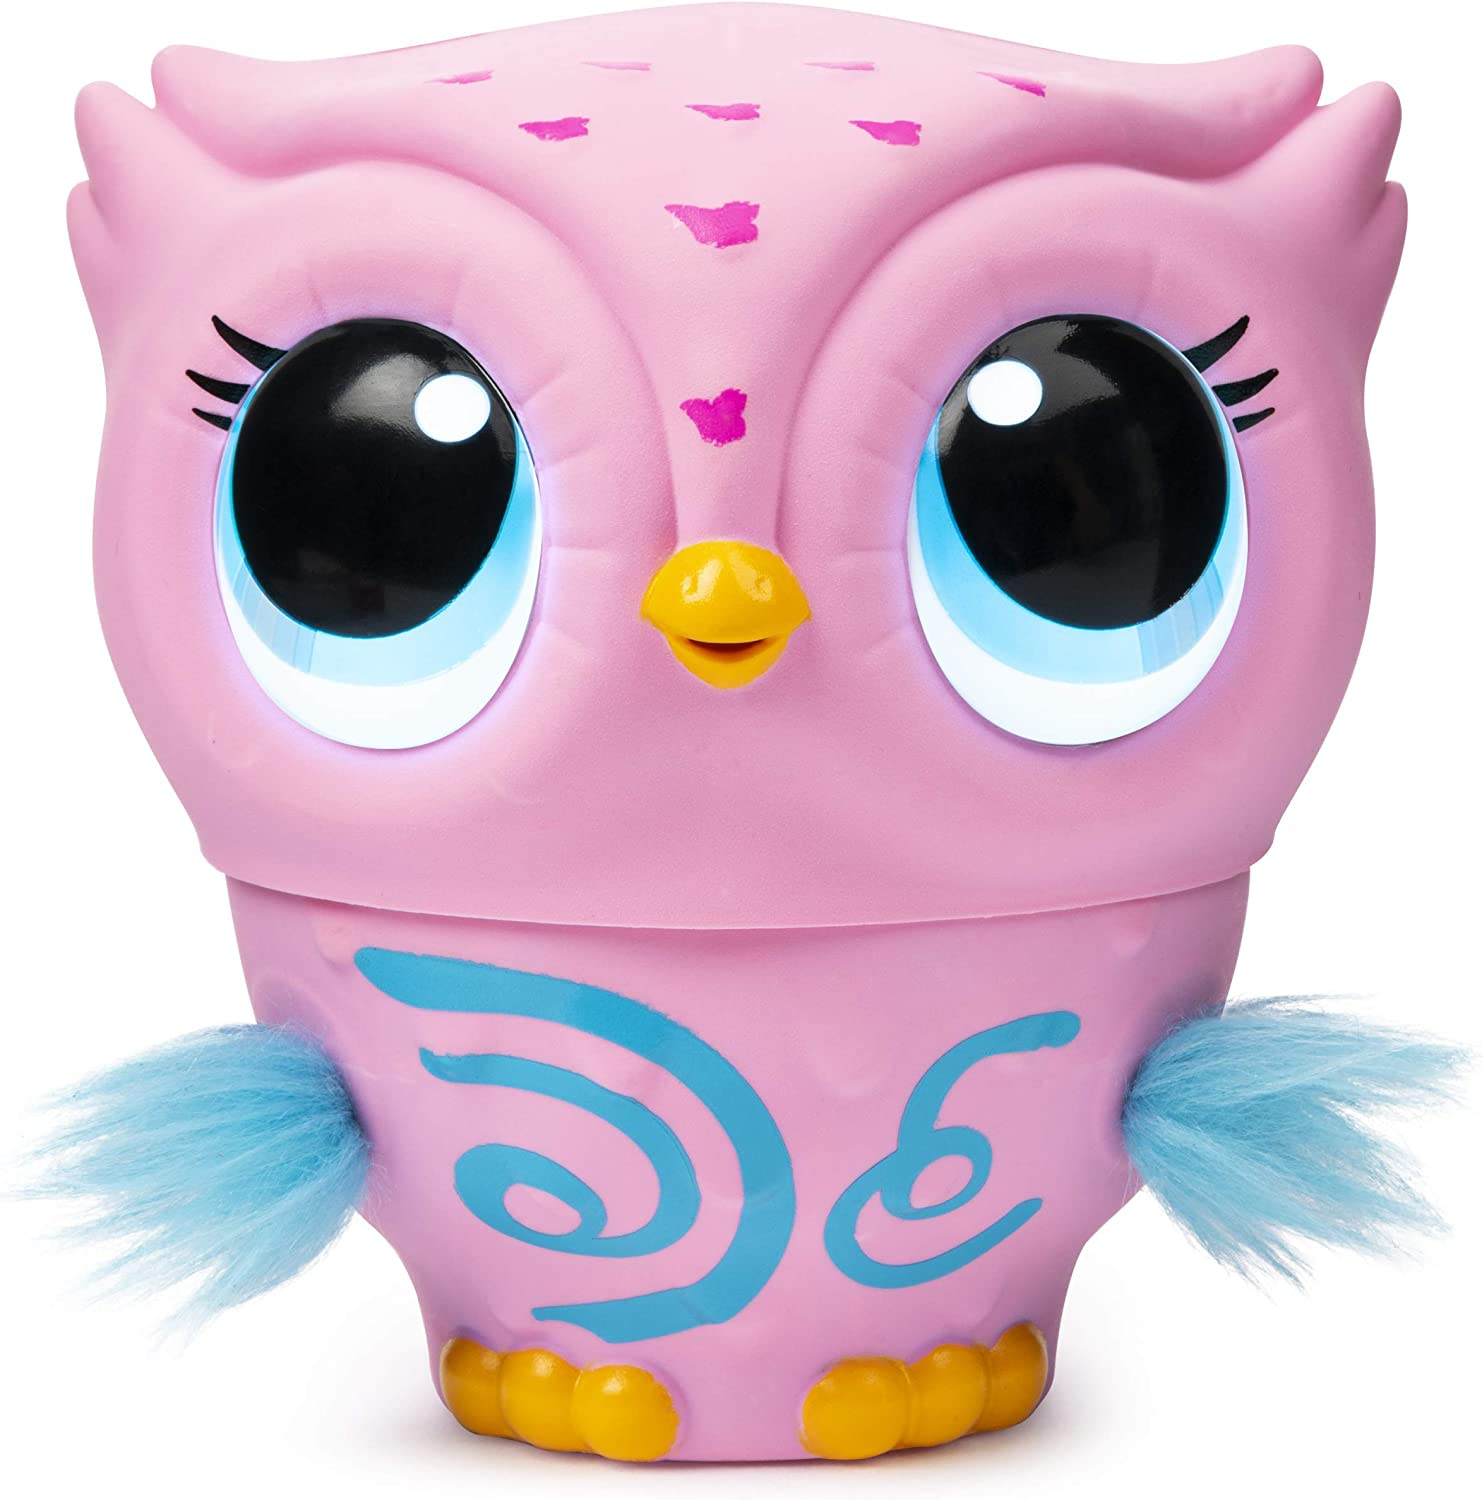 Owleez, Flying Baby Owl Interactive Toy with Lights & Sounds (Pink), for Kids Aged 6 & Up